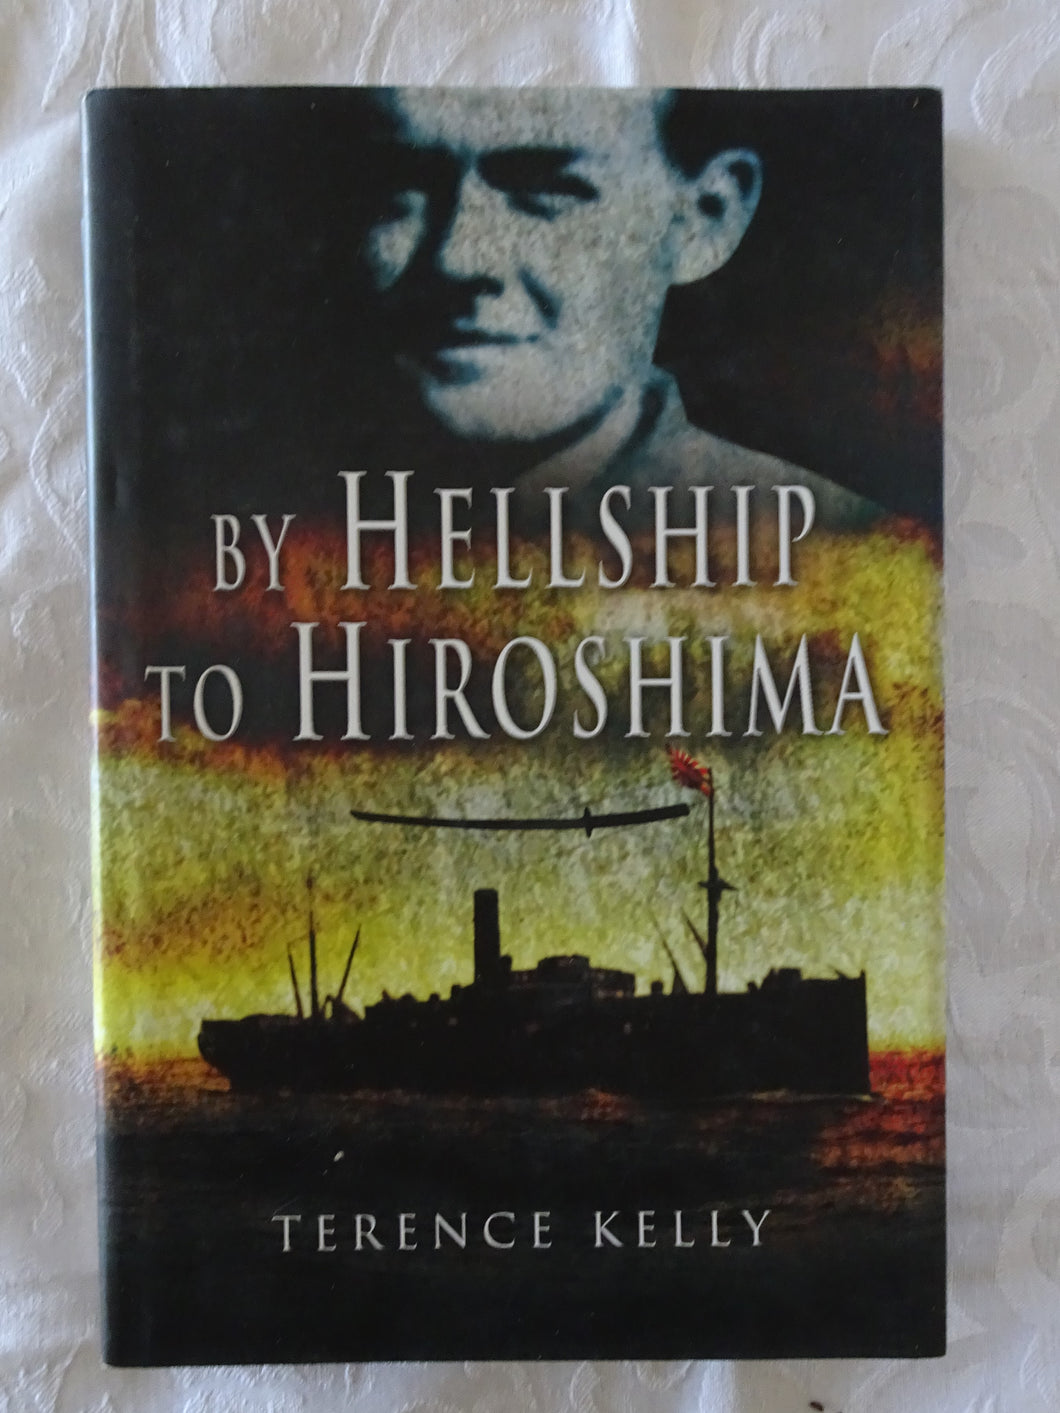 By Hellship to Hiroshima by Terence Kelly